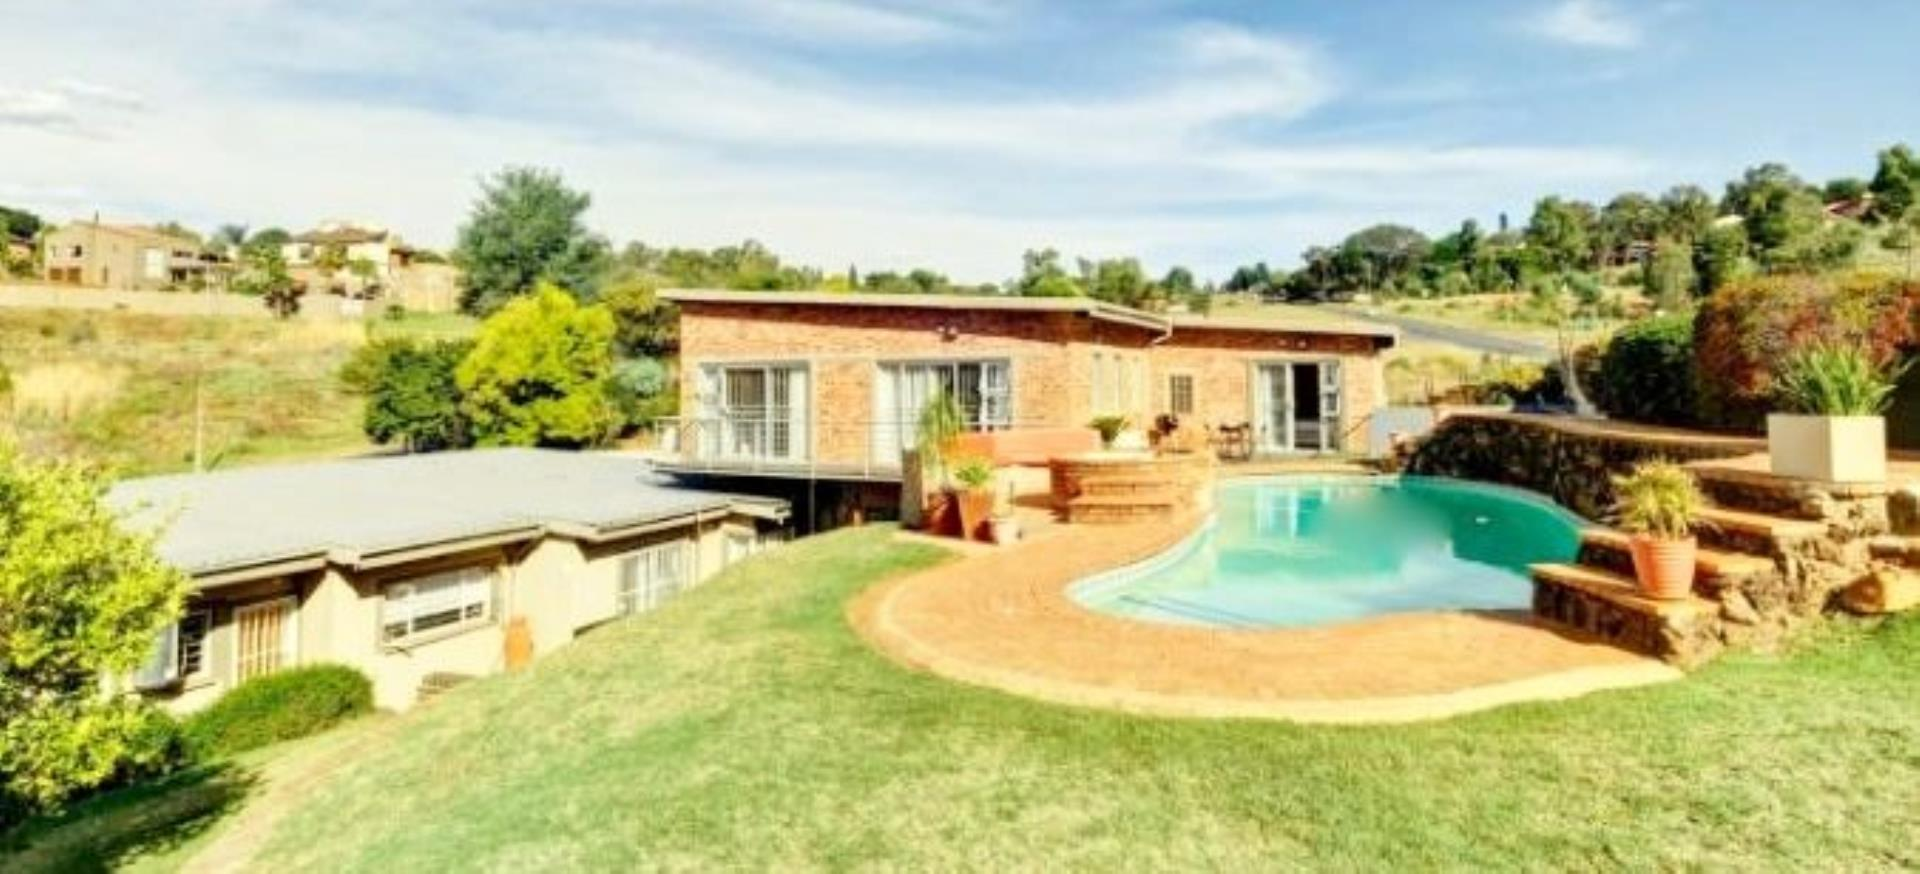 8 Bedroom House for Sale in Roodekrans, Roodepoort - Gauteng